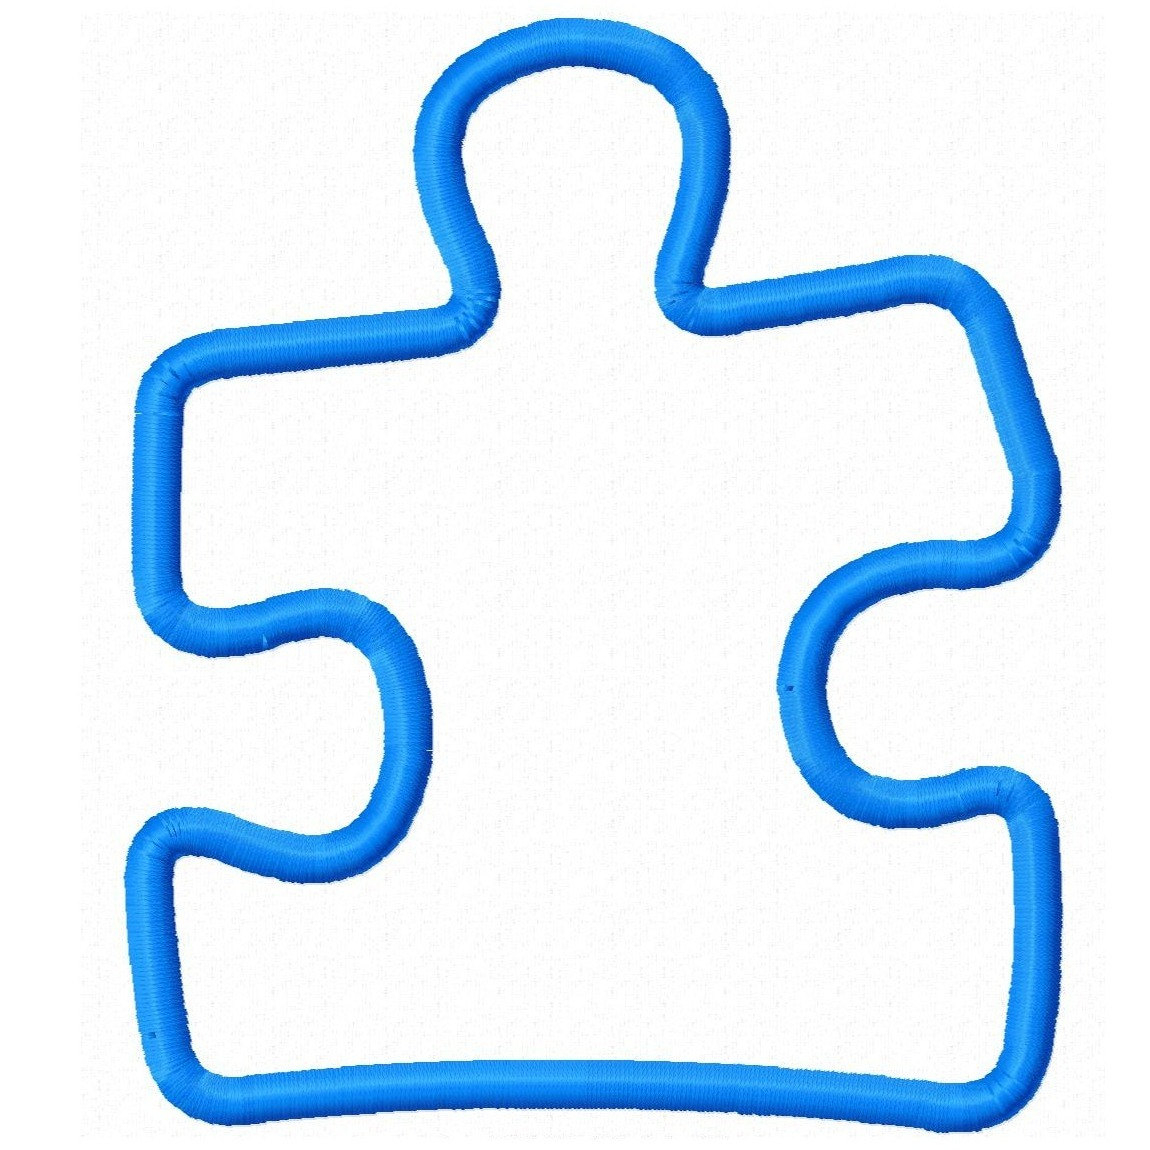 Puzzle Piece Clipart | Free Download Best Puzzle Piece Clipart On - Printable Autism Puzzle Piece